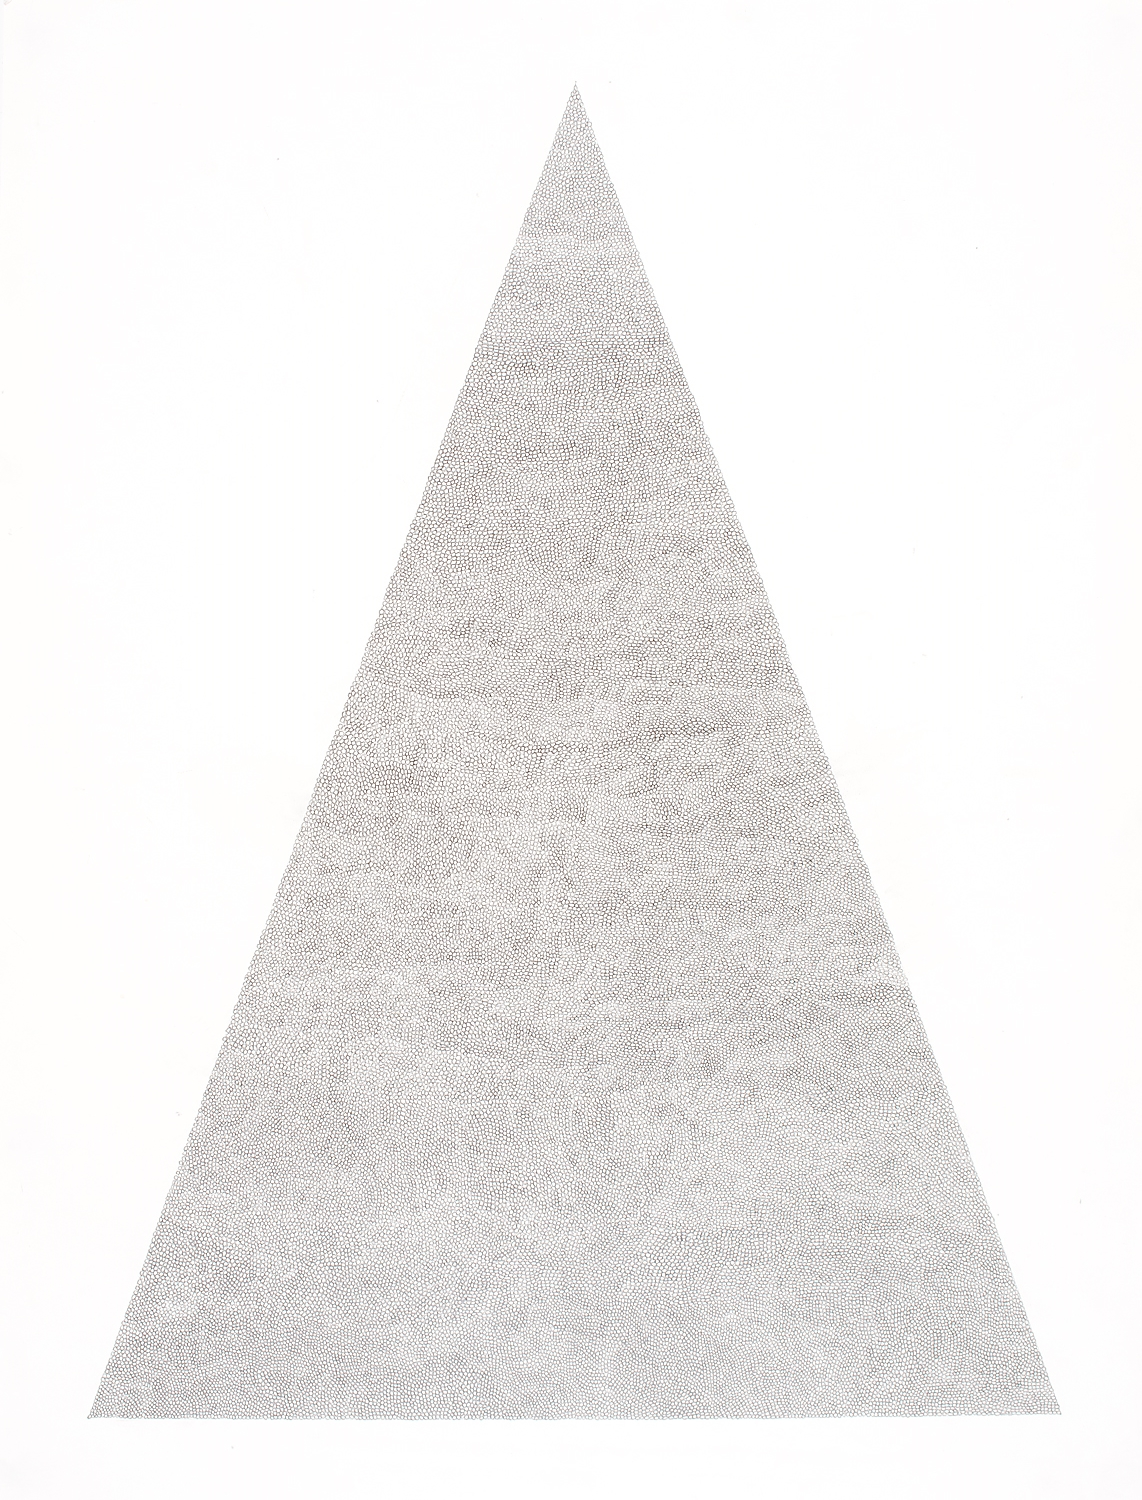 Circle Within Large Triangle,2007 50 by 38 inches Graphite on paper